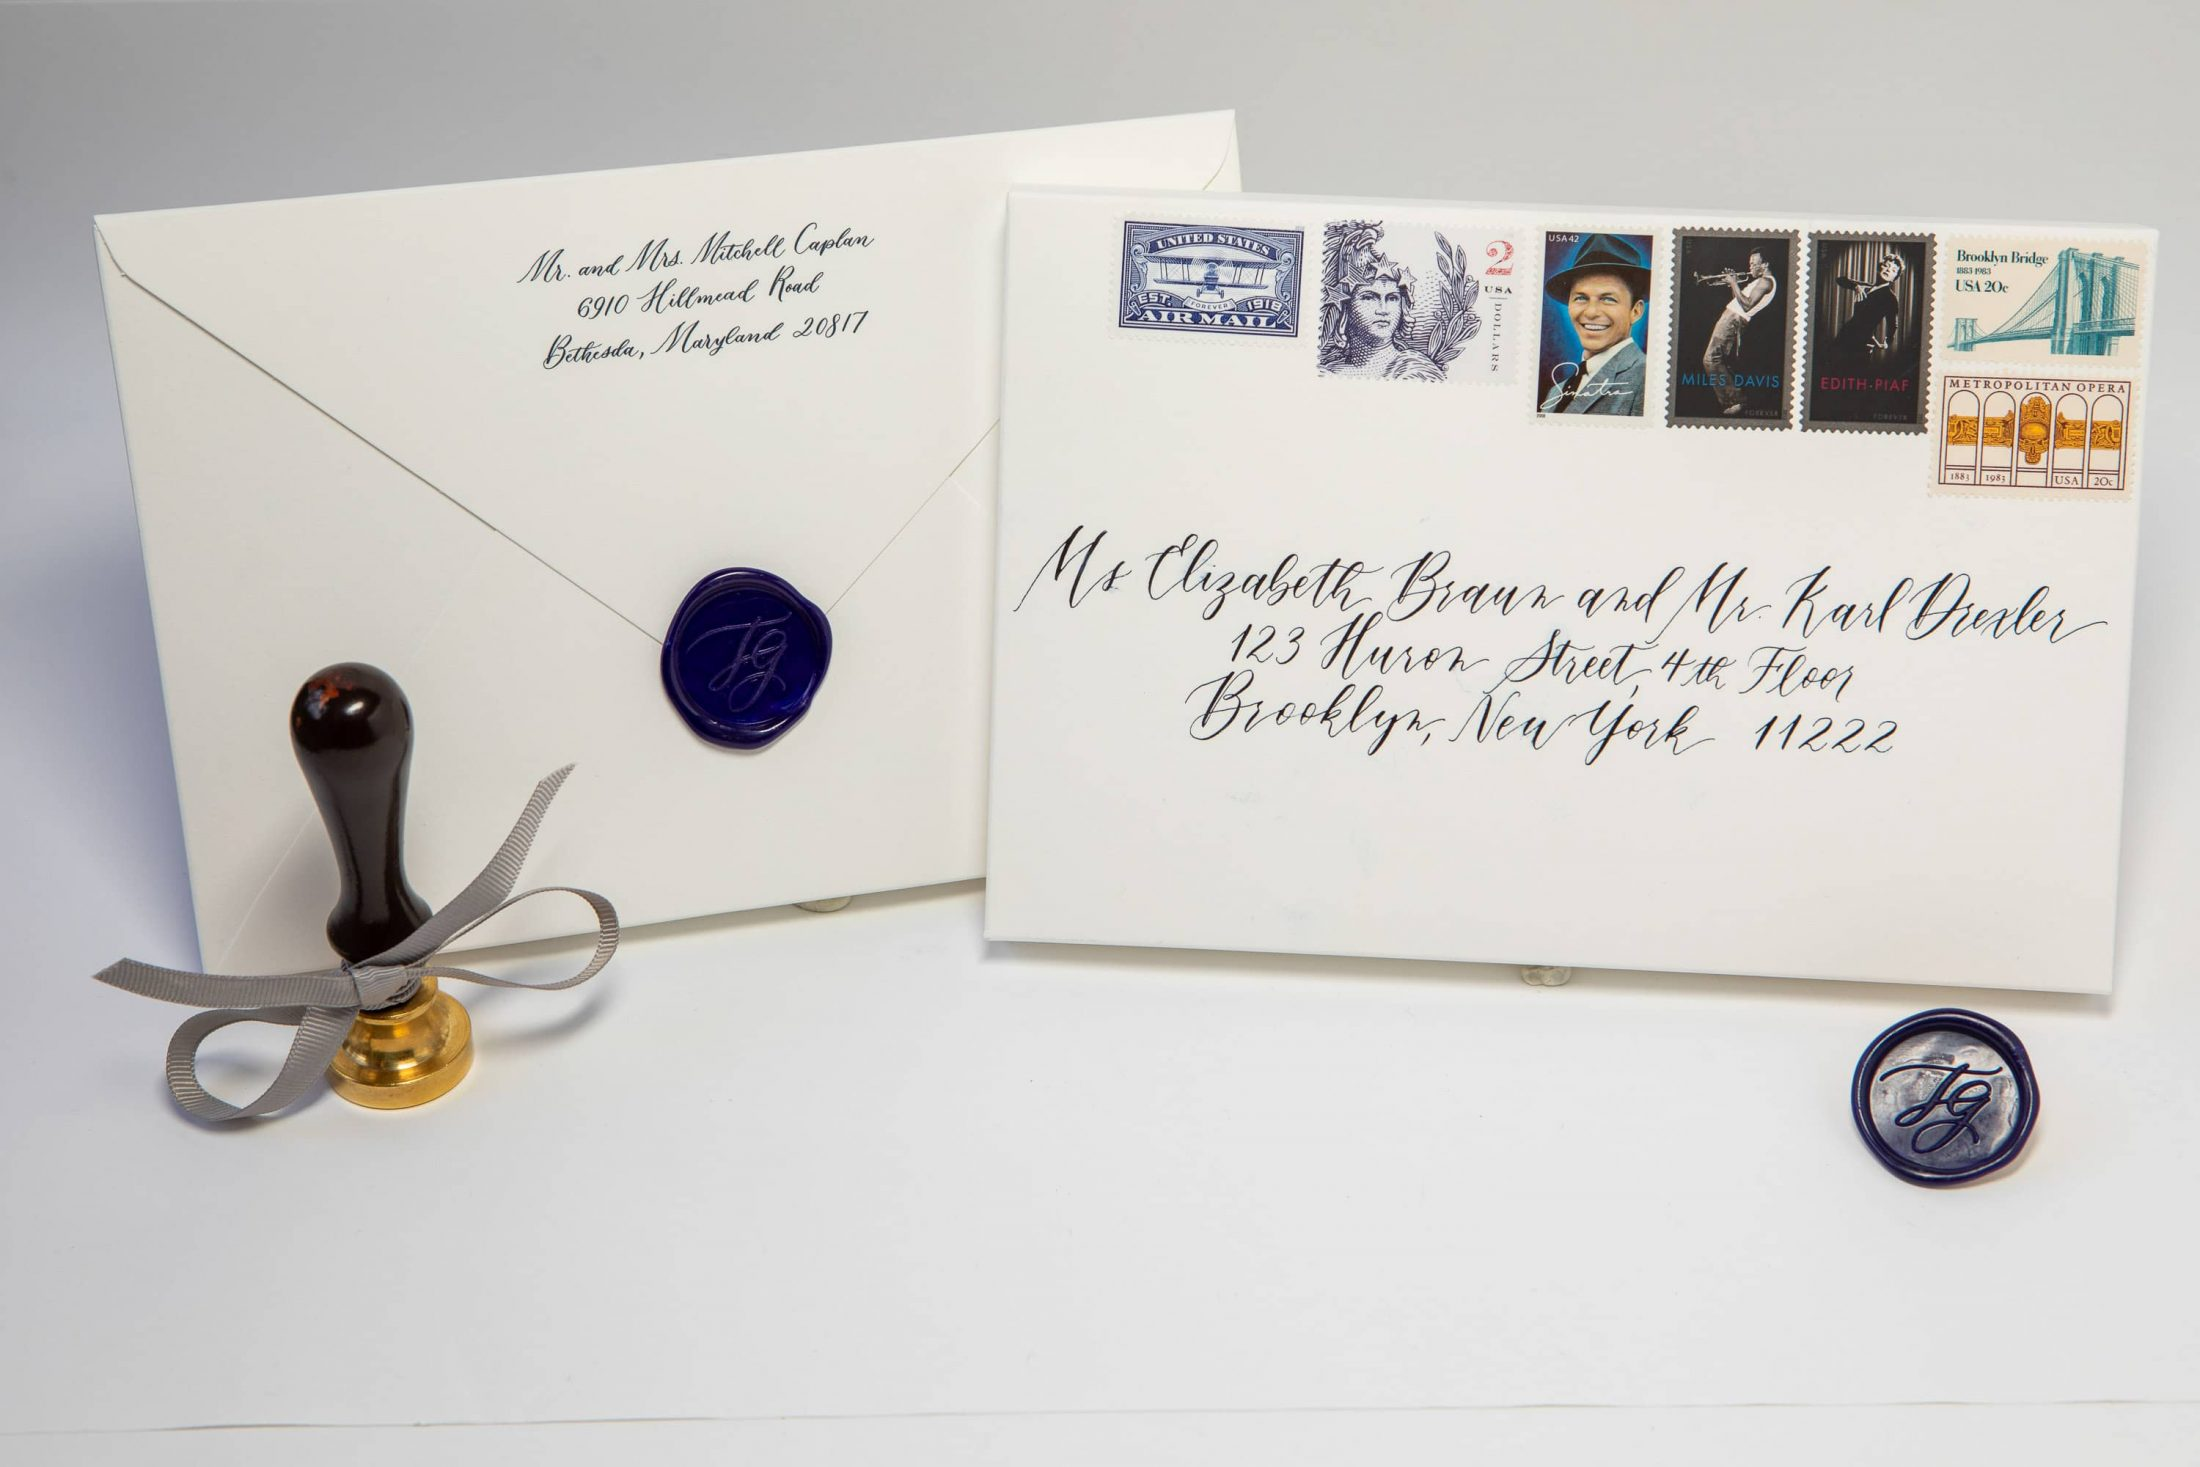 Wedding stationery at this NYE wedding in New York City | Photo by Gruber Photo